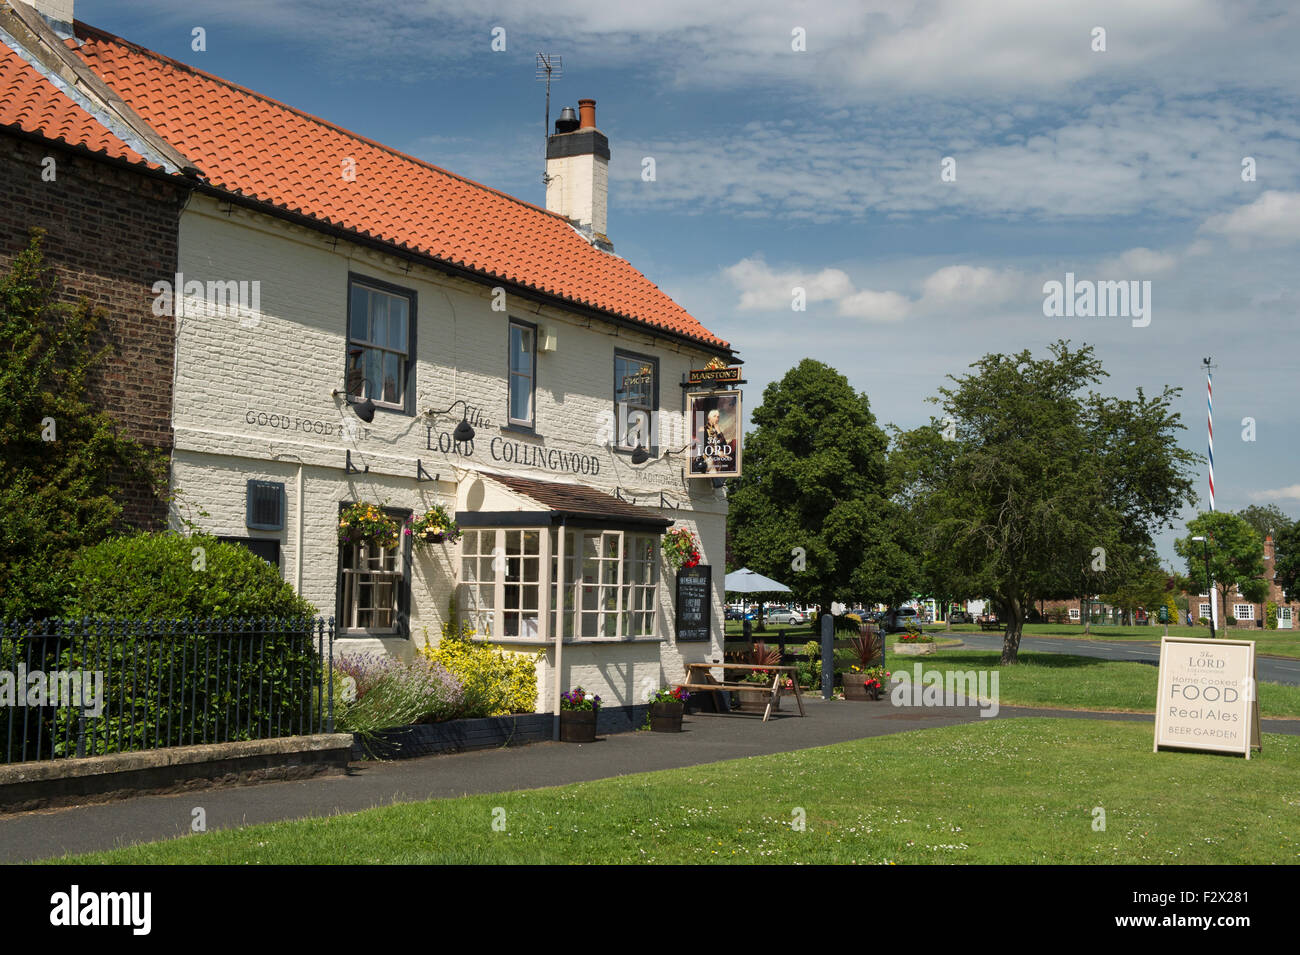 Sunny summer view of attractive, traditional, old, English rural pub (The Lord Collingwood) - Upper Poppleton village Stock Photo